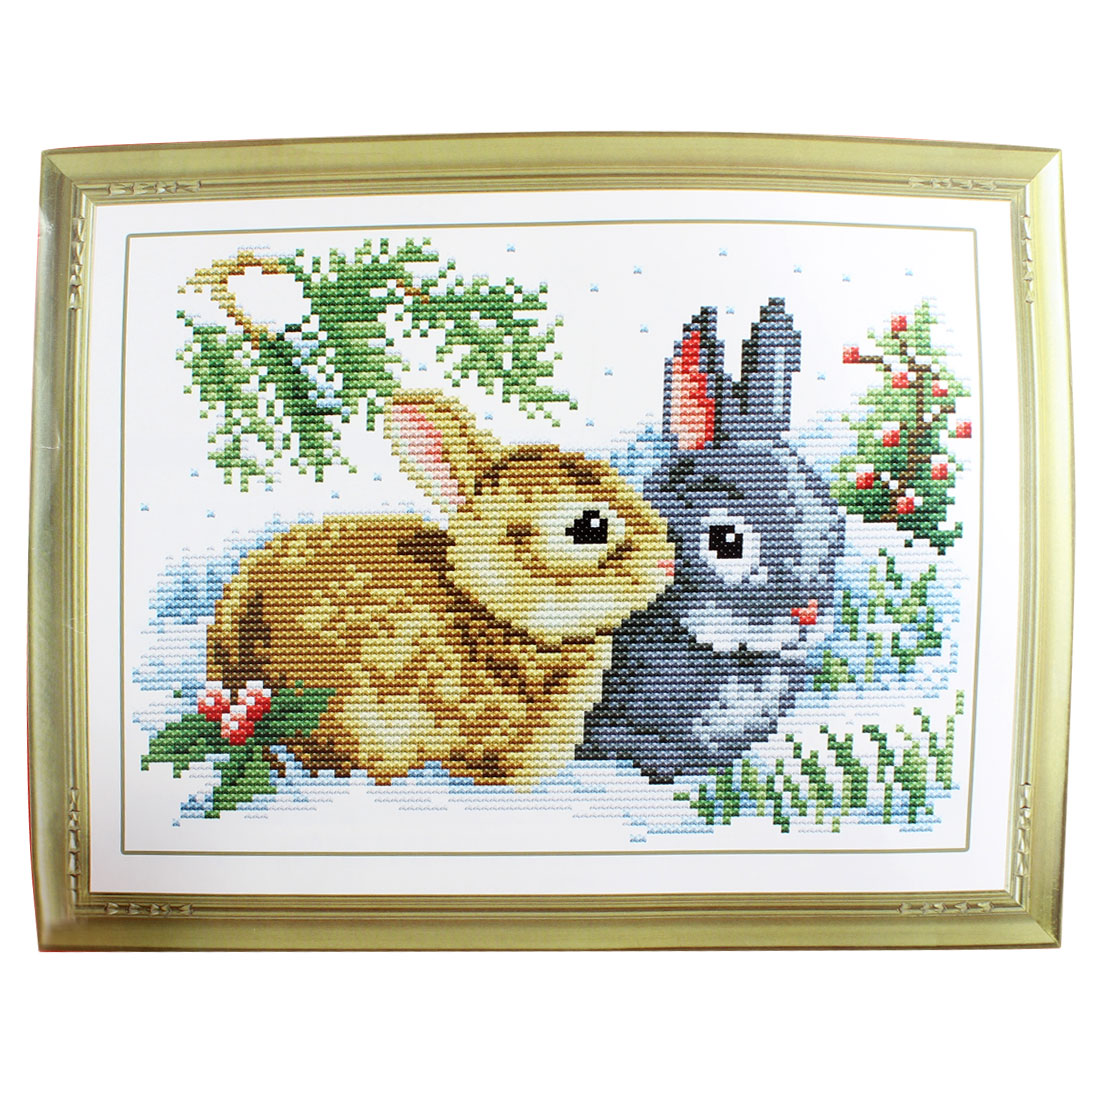 Rabbit Grass Pattern Stamped Cross Stitch Counted Kit for Lady Woman